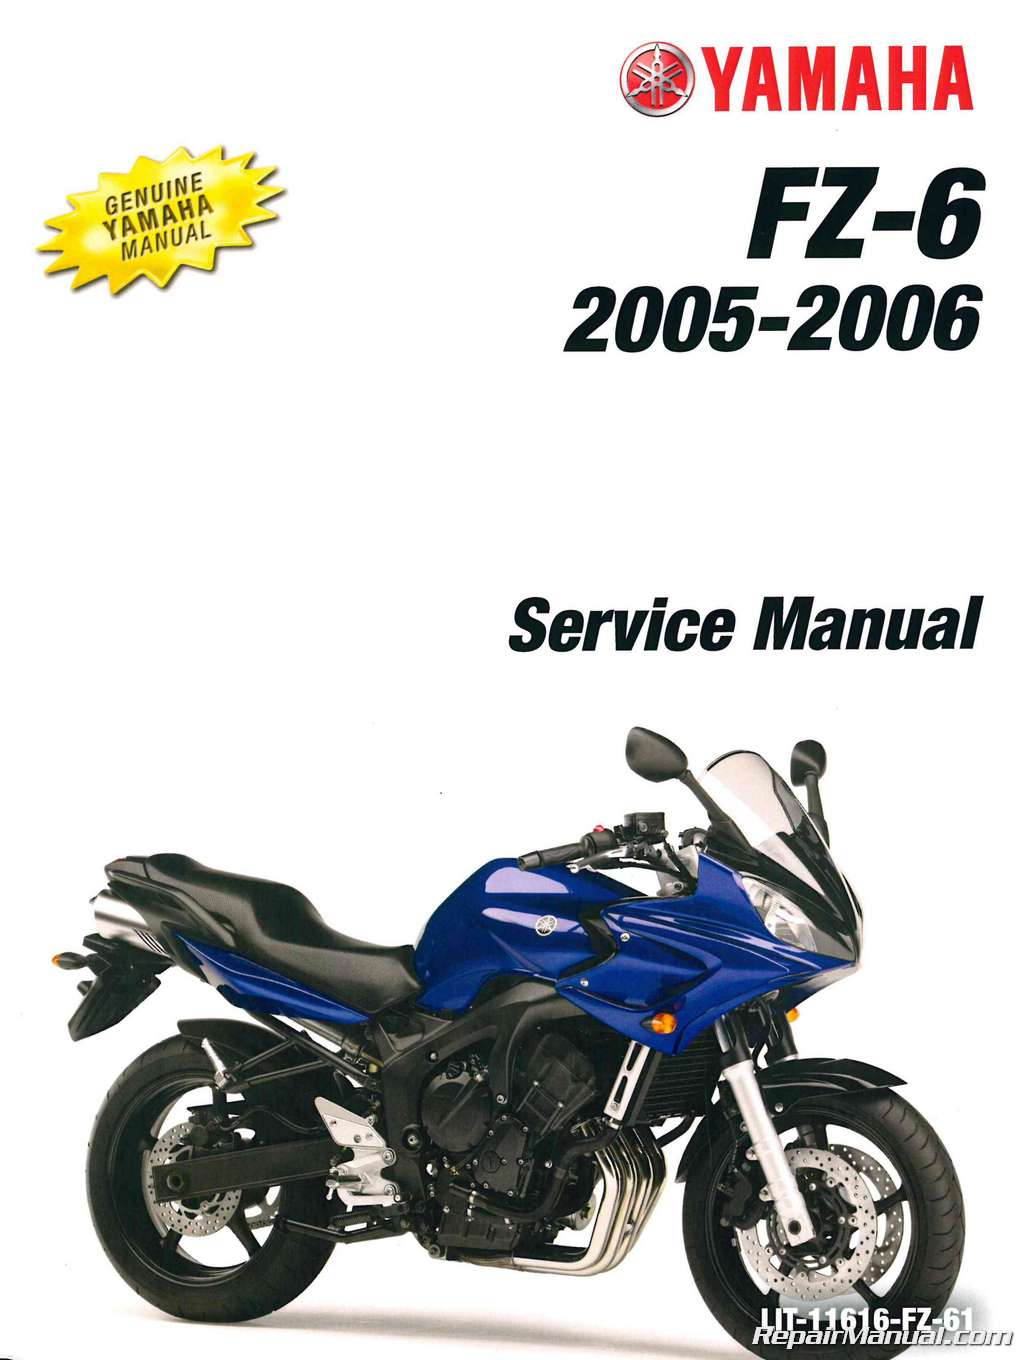 2012 Yamaha Fz6r Wiring Diagram Library Tacho Connecting For R1 04 06